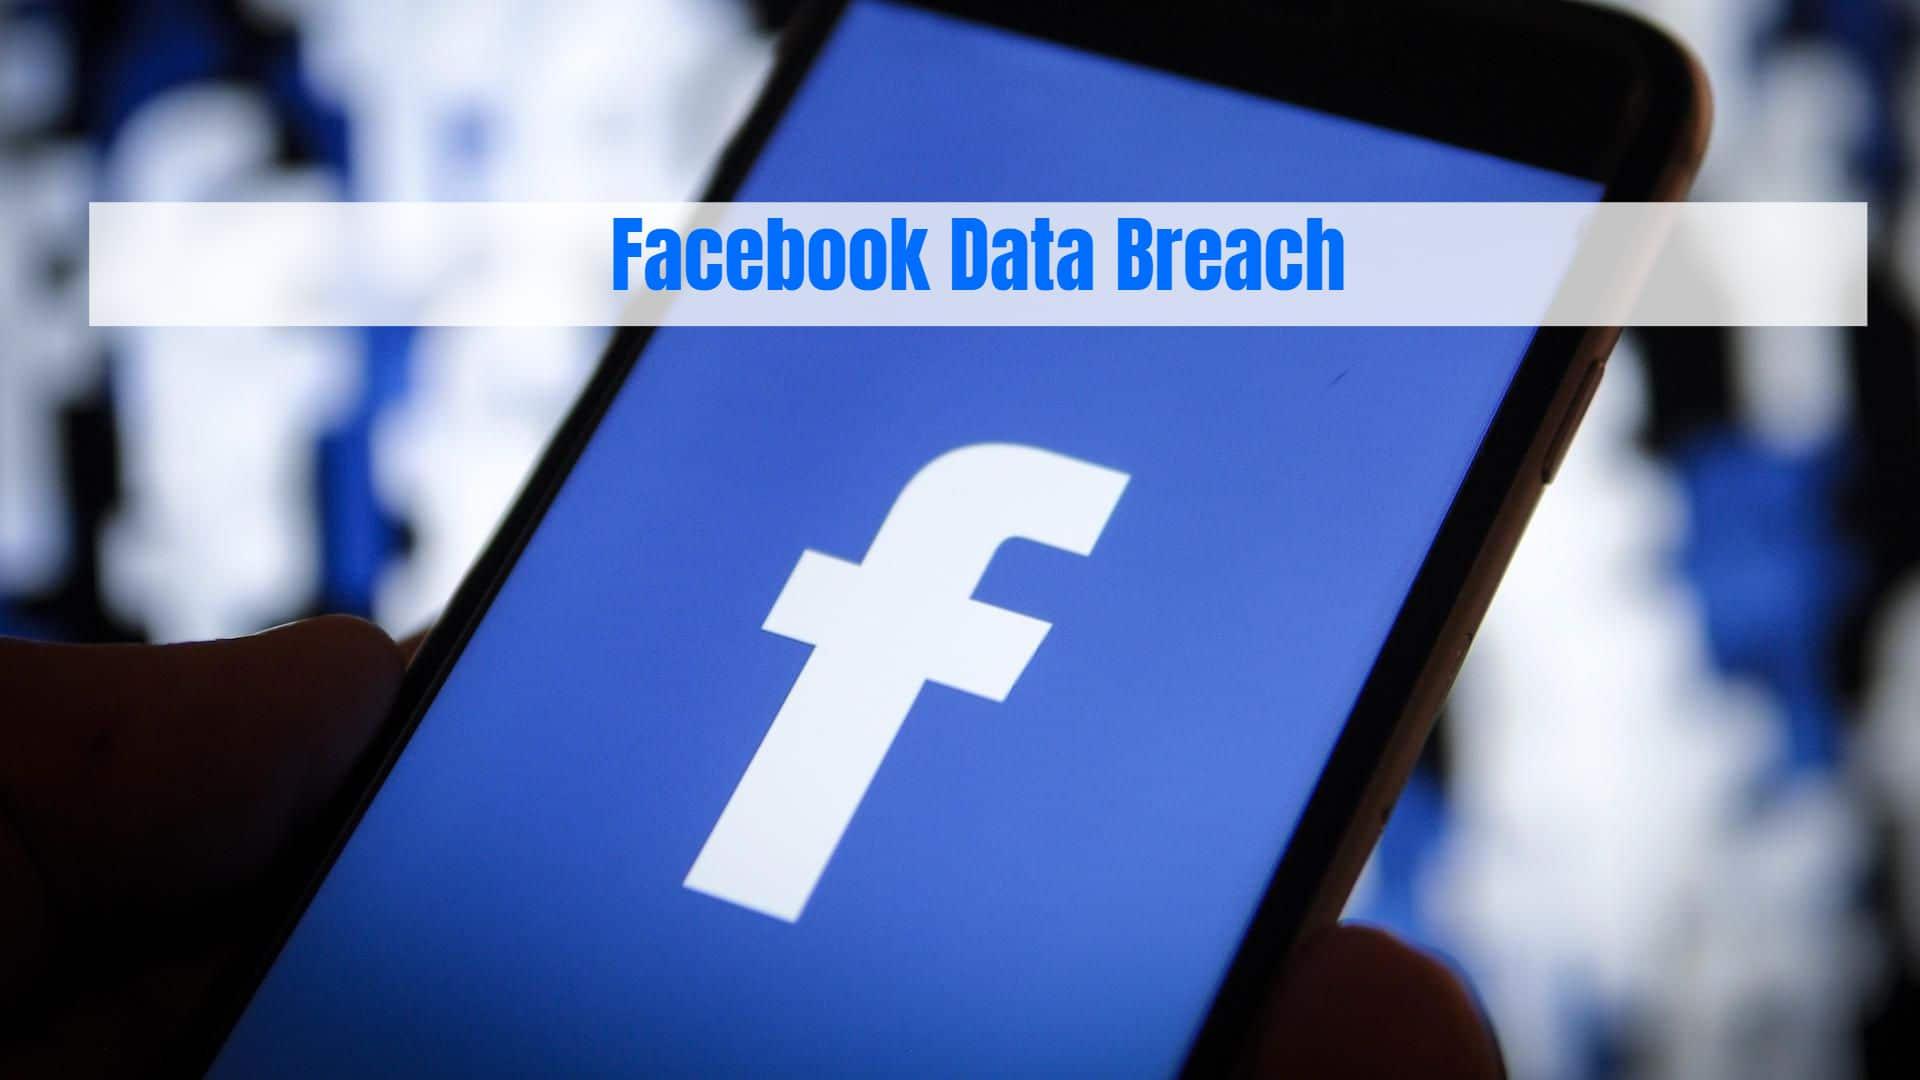 Facebook Data Breach Probe Launched by Irish Watchdog